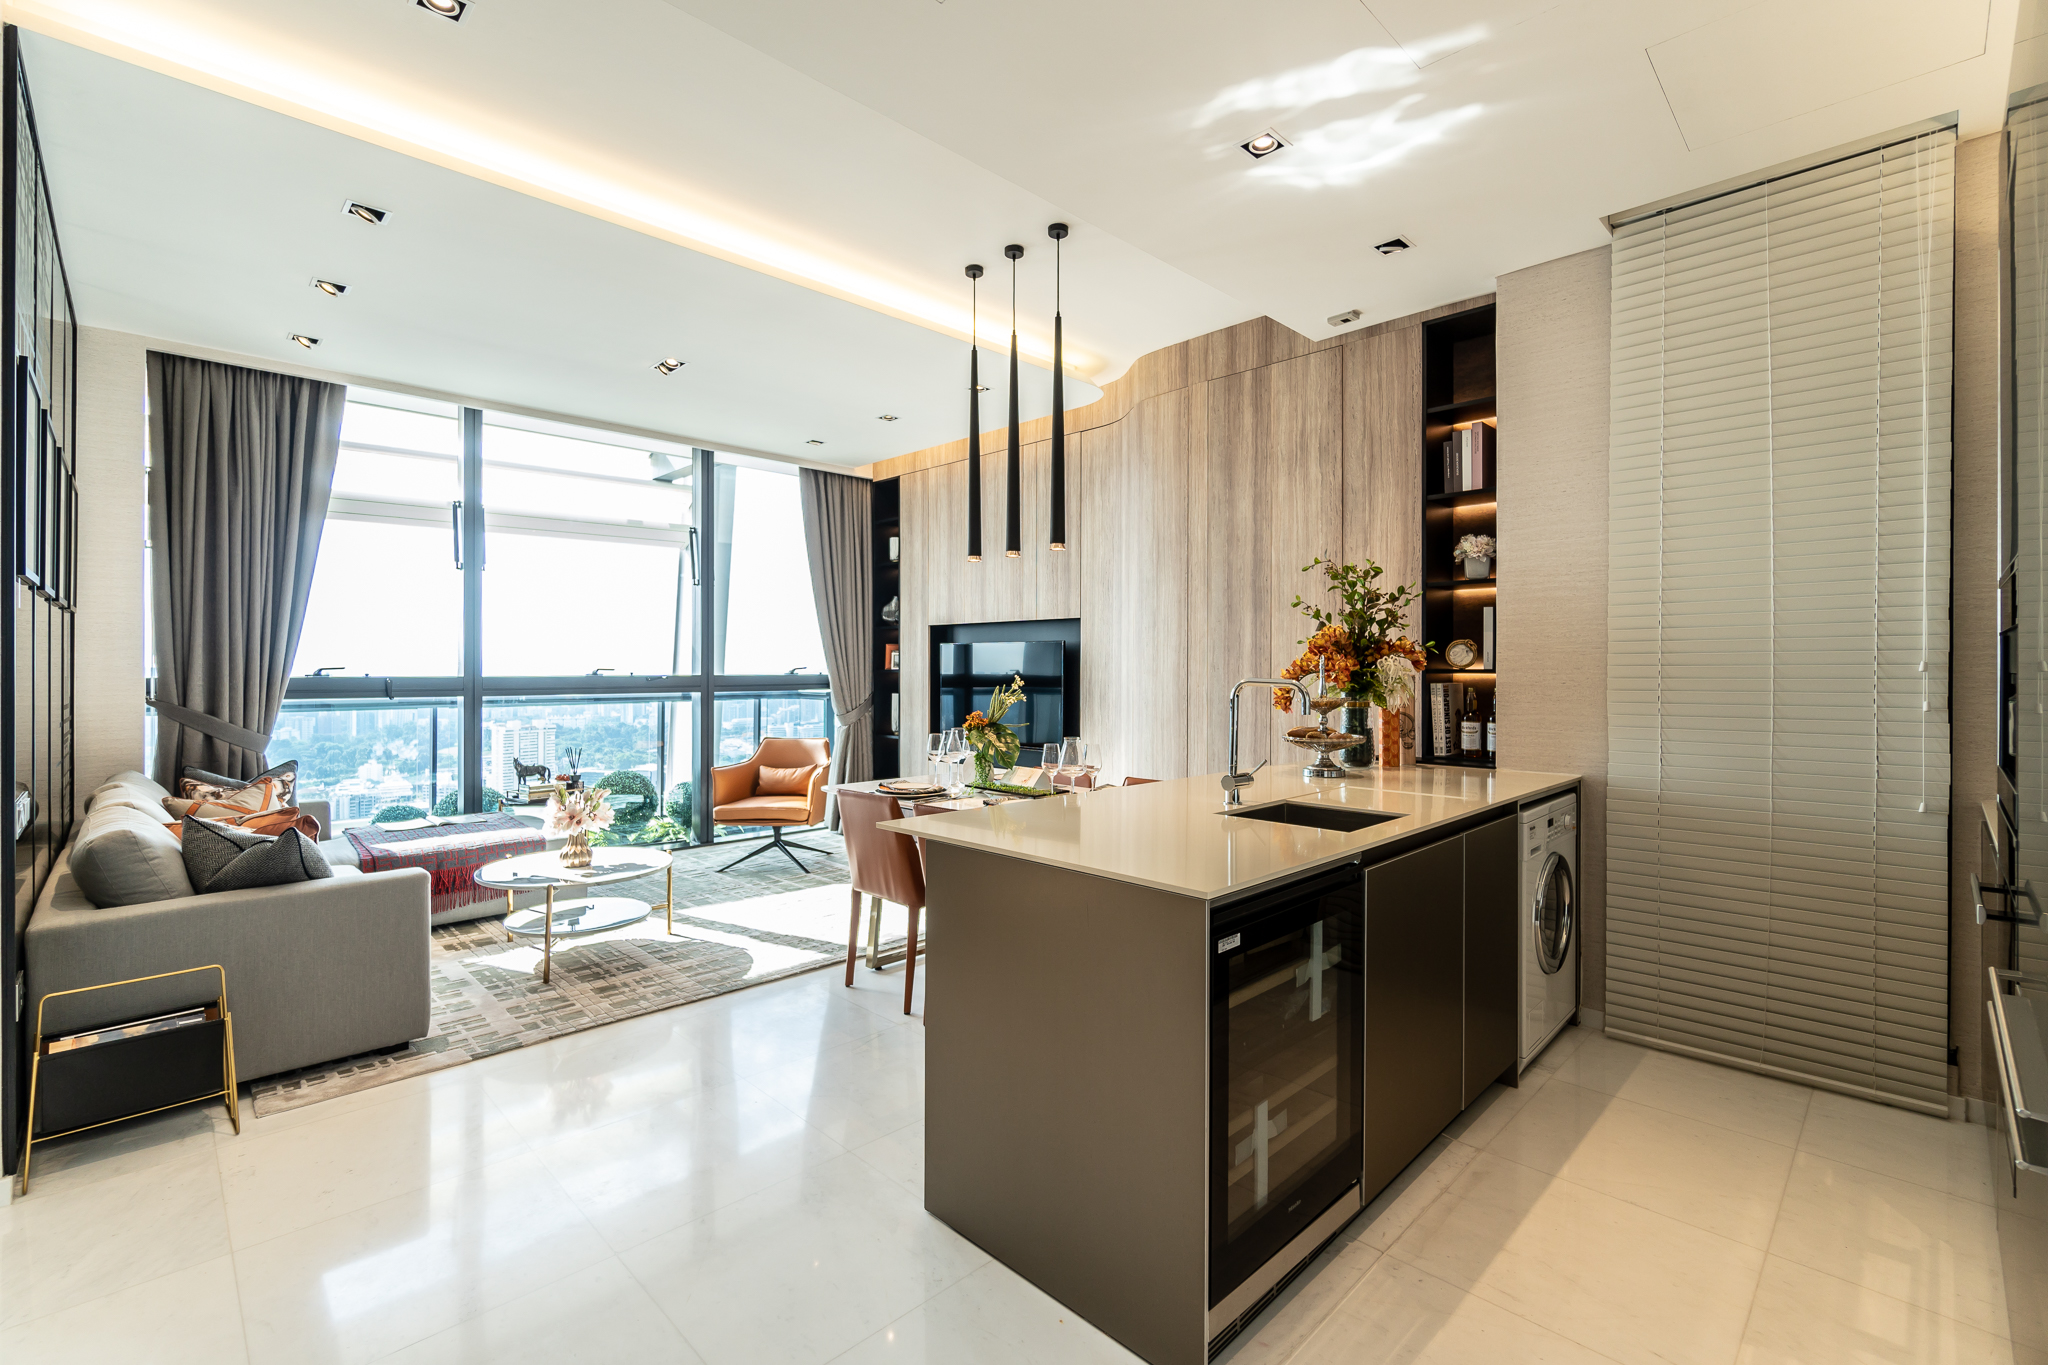 South Beach Residences 2 bedroom Selling SIngapore